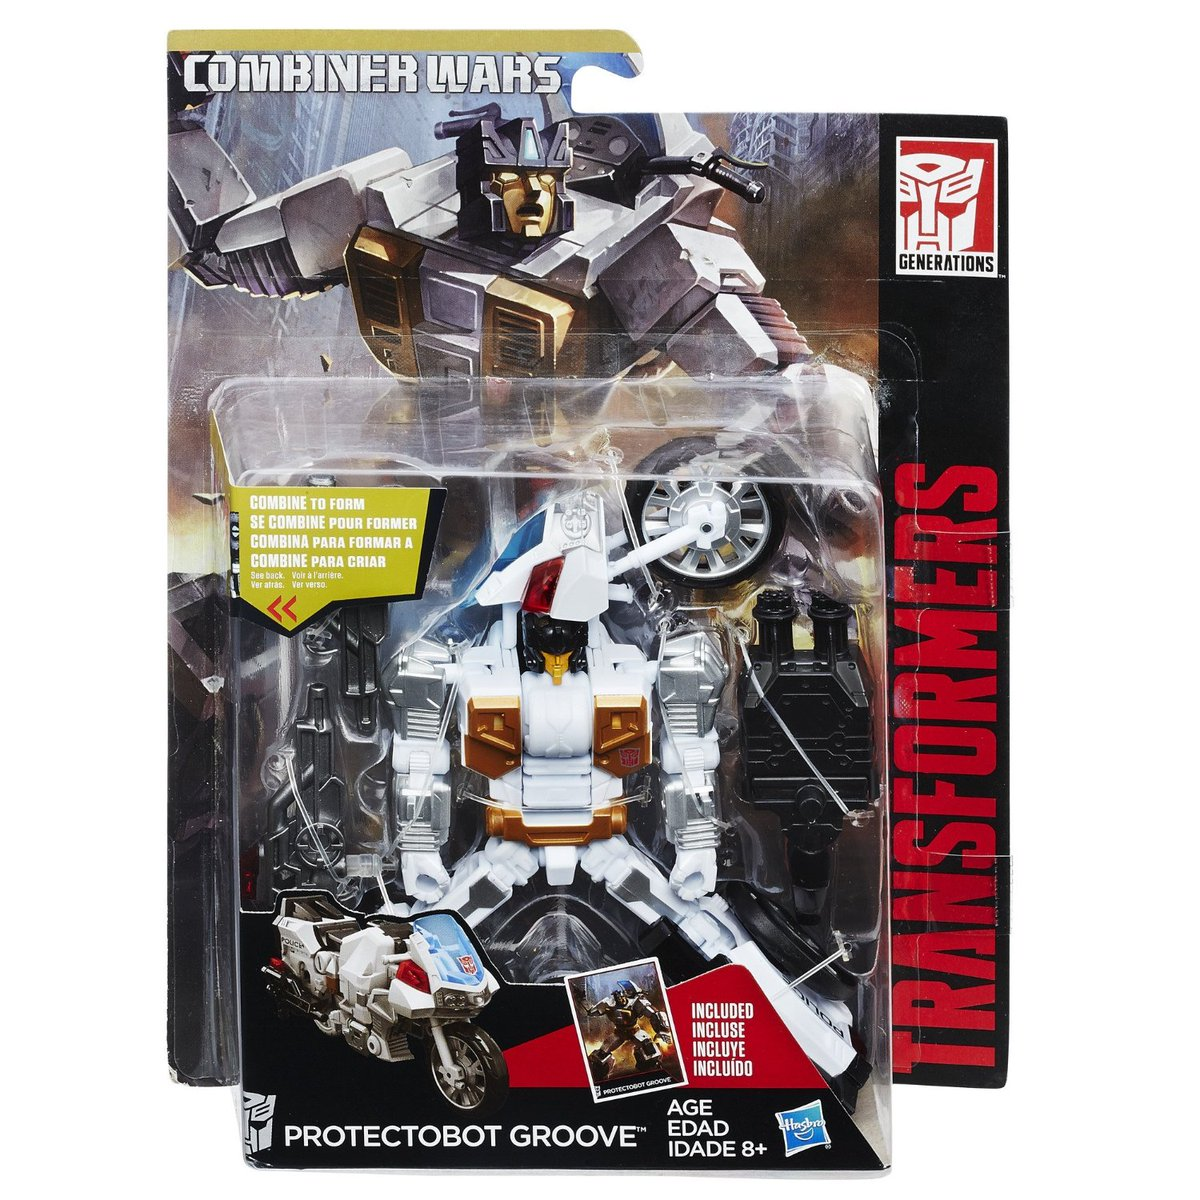 One day left! RT and follow for a chance to win Combiner Wars Groove! Winner announced during RFC and via DM https://t.co/GcHWW9hlZ3